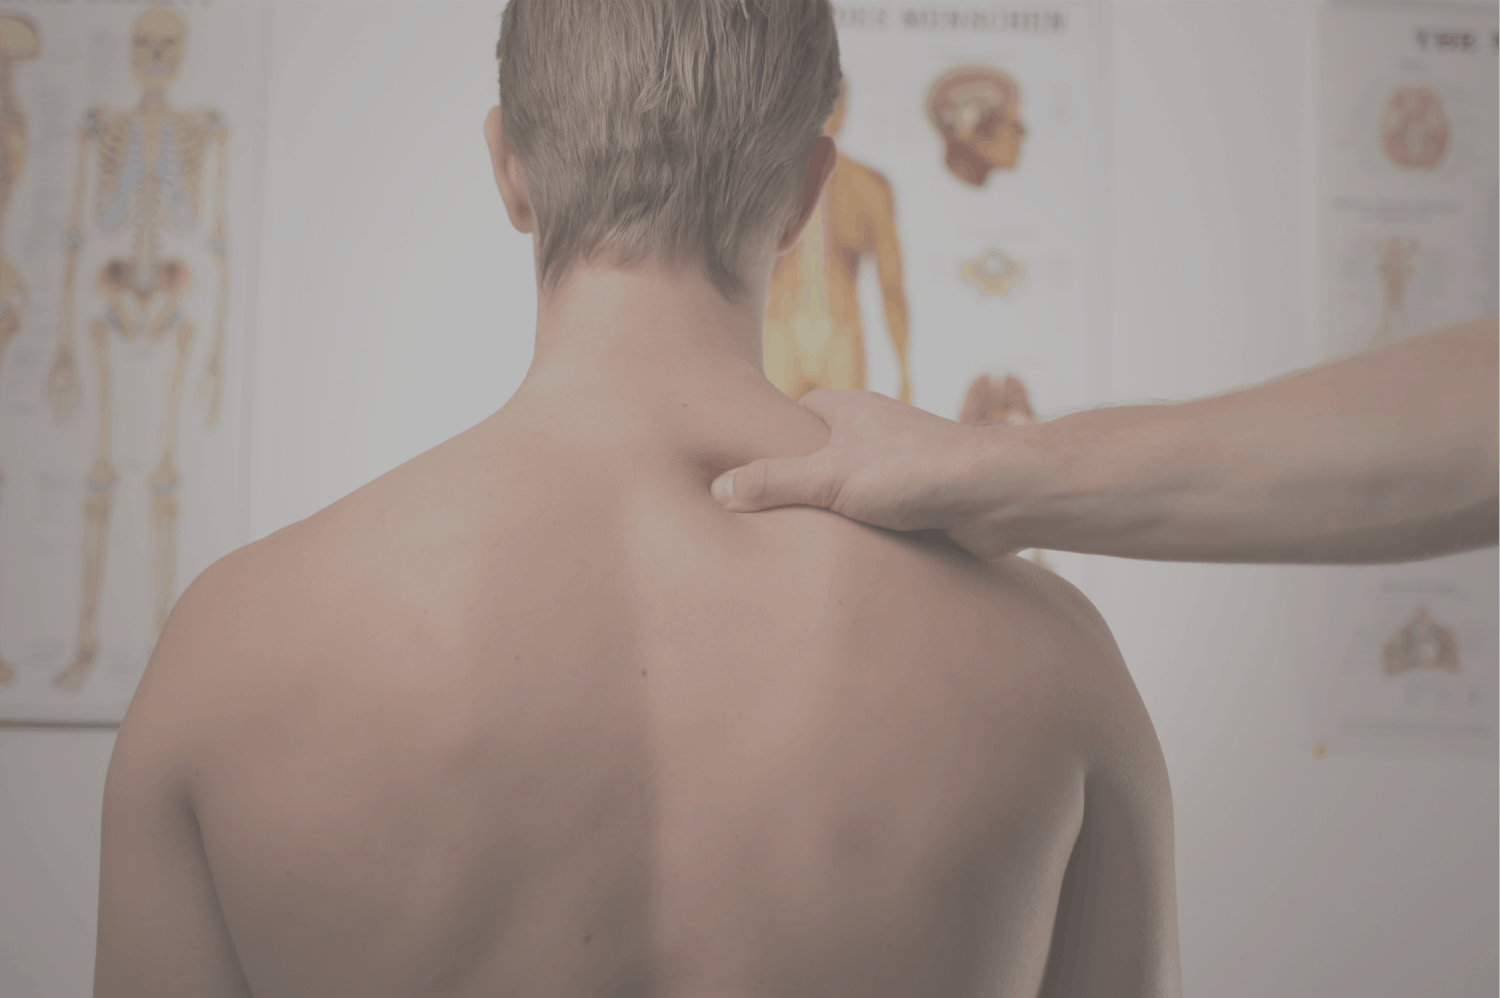 What does a physio do for neck pain?